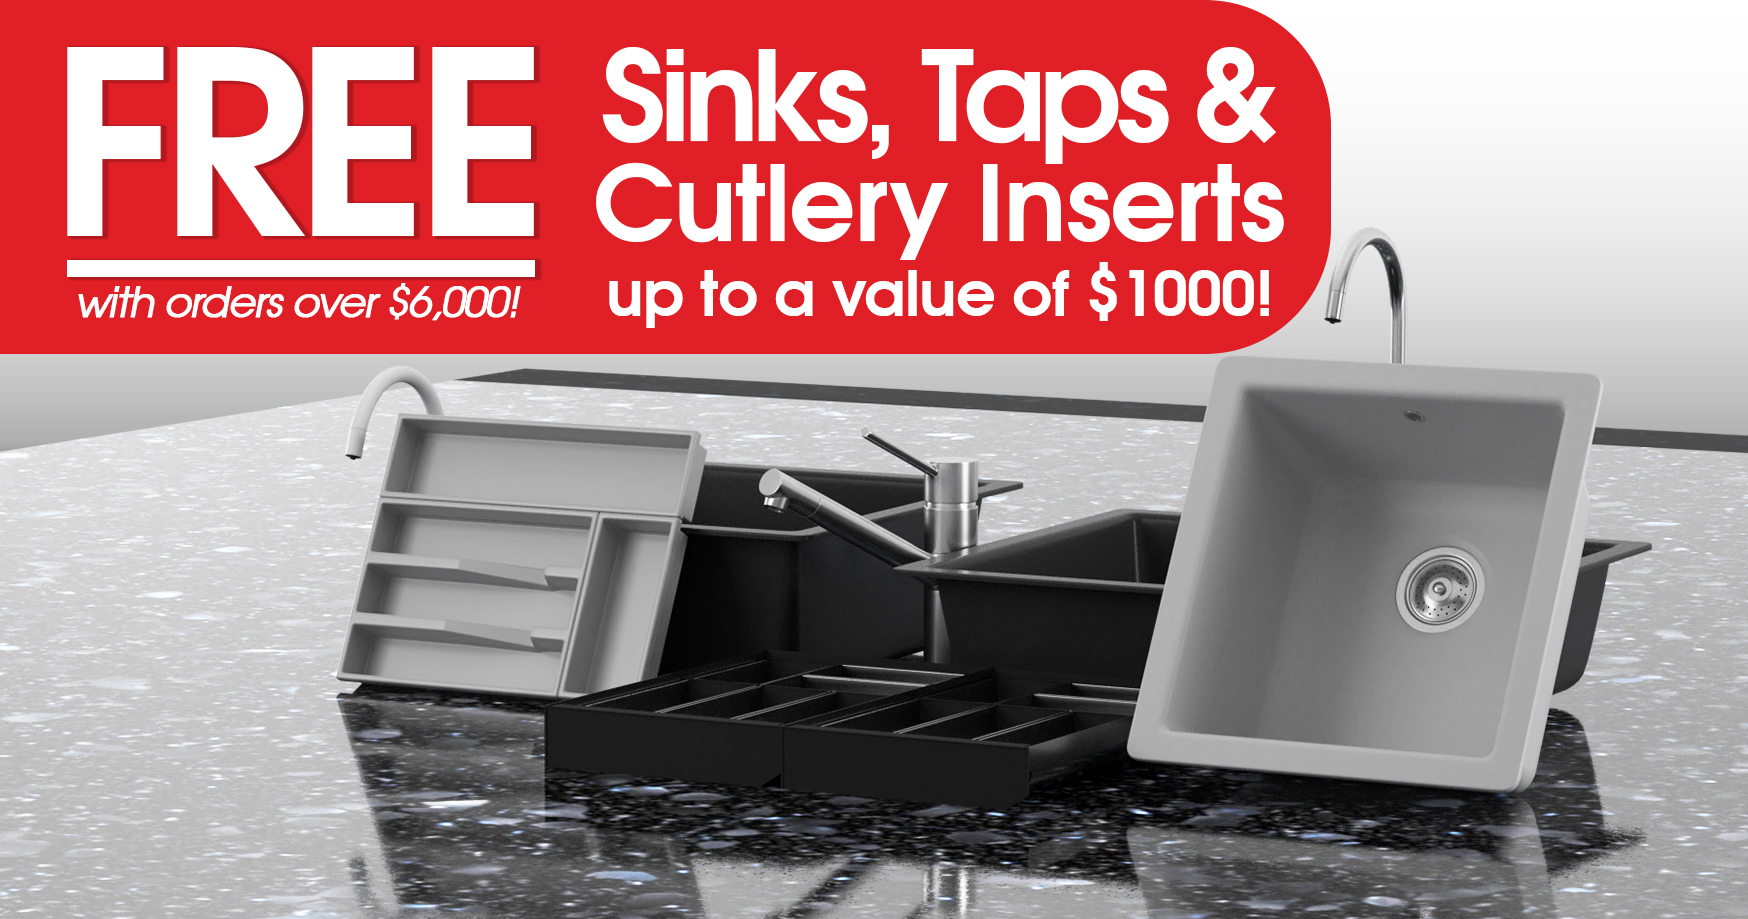 Project Kitchens - Free with orders over $6,000 - Sinks, Taps and Cutlery Inserts up to a value of $1000